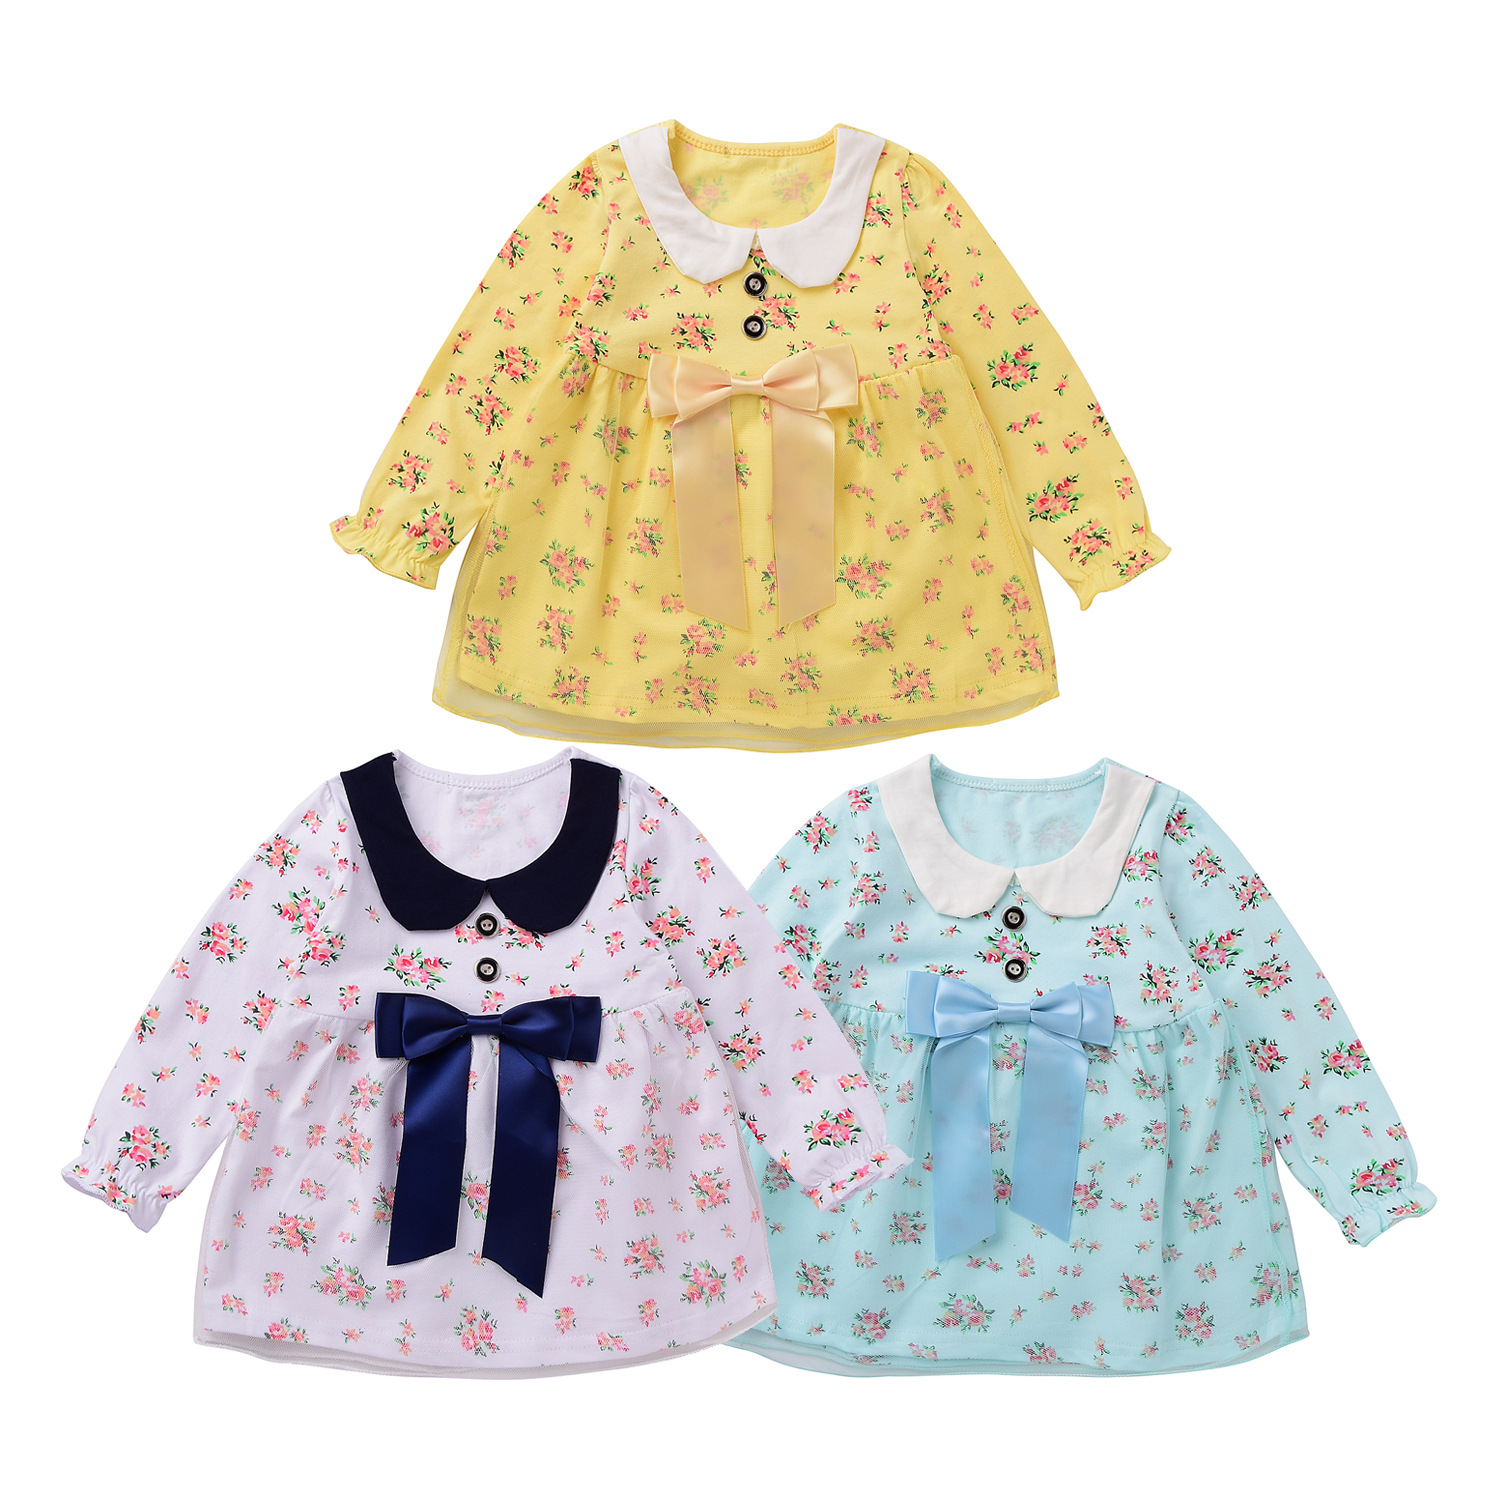 Fashion Baby Clothes Floral Baby Dress Girls Cotton Long Sleeve